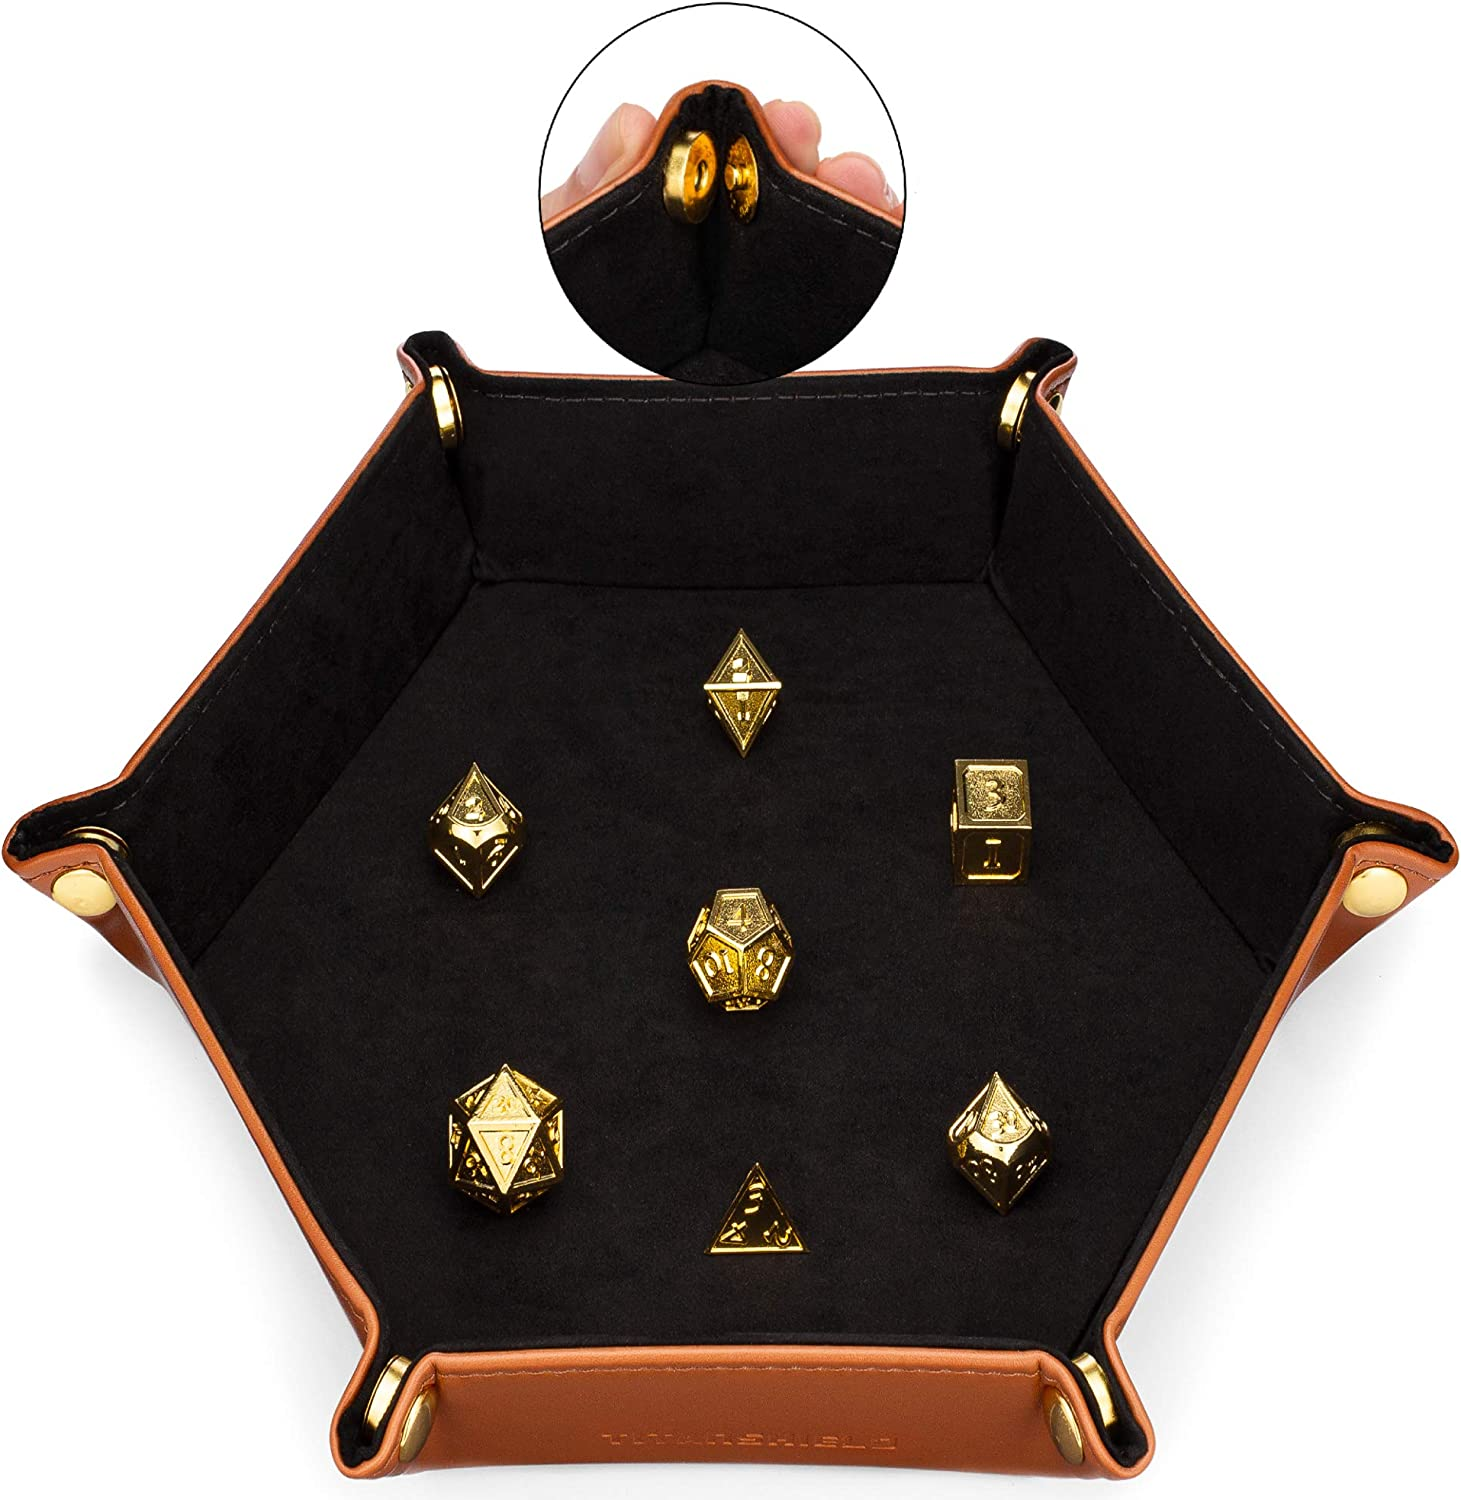 TITANSHIELD Premium Magnetic Dice Tray for Rolling - Suitable for Metal Dice, RPG, DND, Table Games